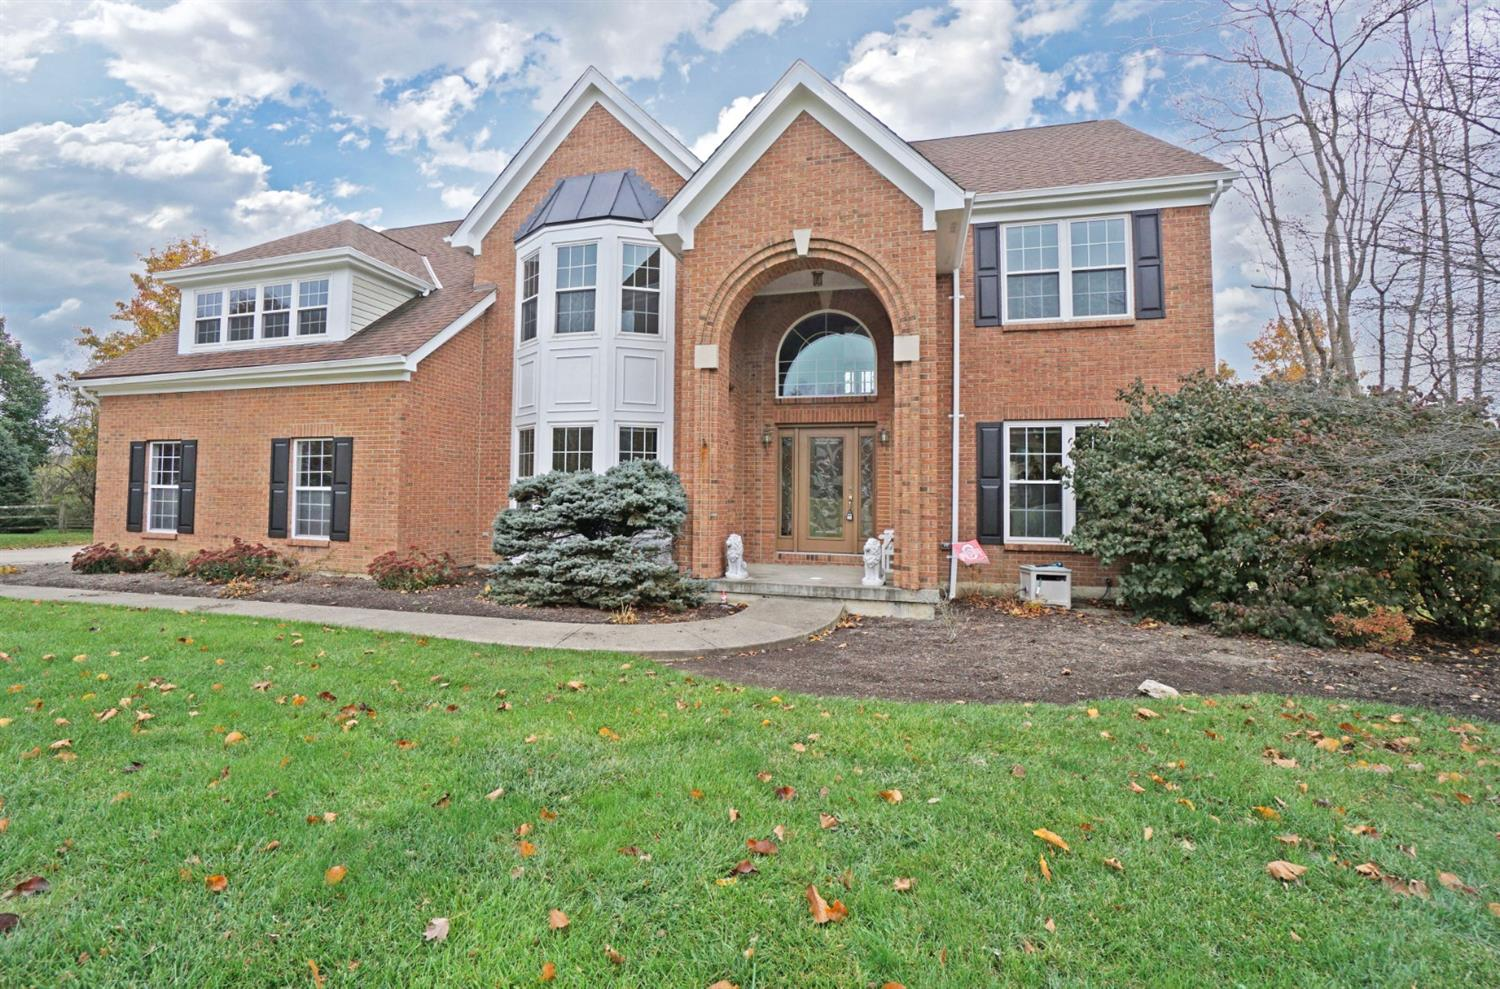 5017 Silvermine Ct Miami Twp. (East), OH